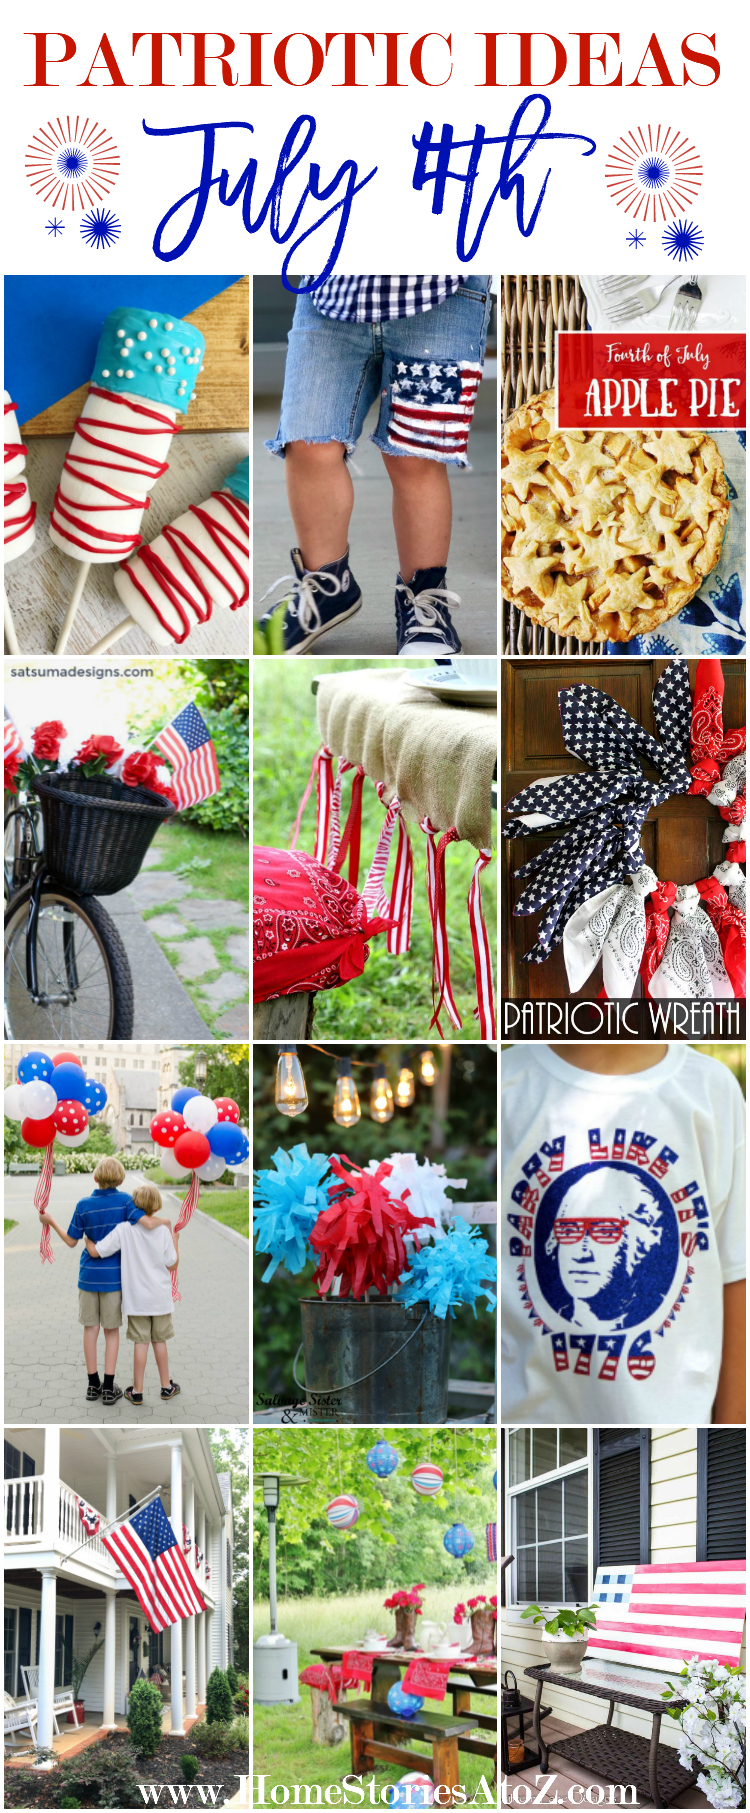 24 Patriotic Ideas for July 4th - Great Ideas for porch decor, entertaining, food, and crafts!